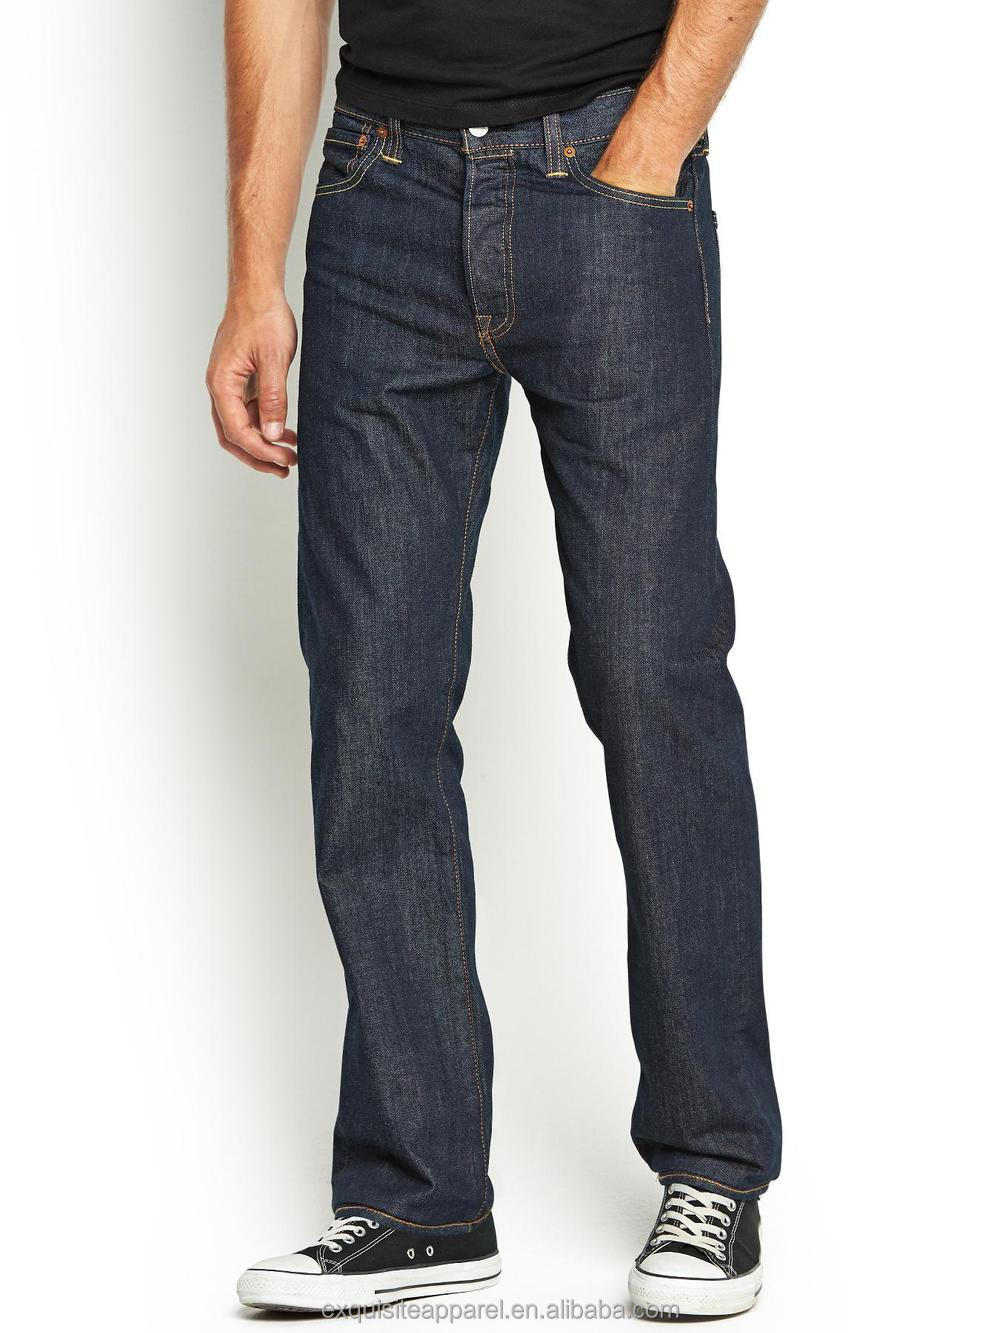 Different styles of men's jeans. Whether for their durability or their casual style, the right cut plays a key role in your comfort. Some common styles include loose fit, straight cut, and skinny fit.